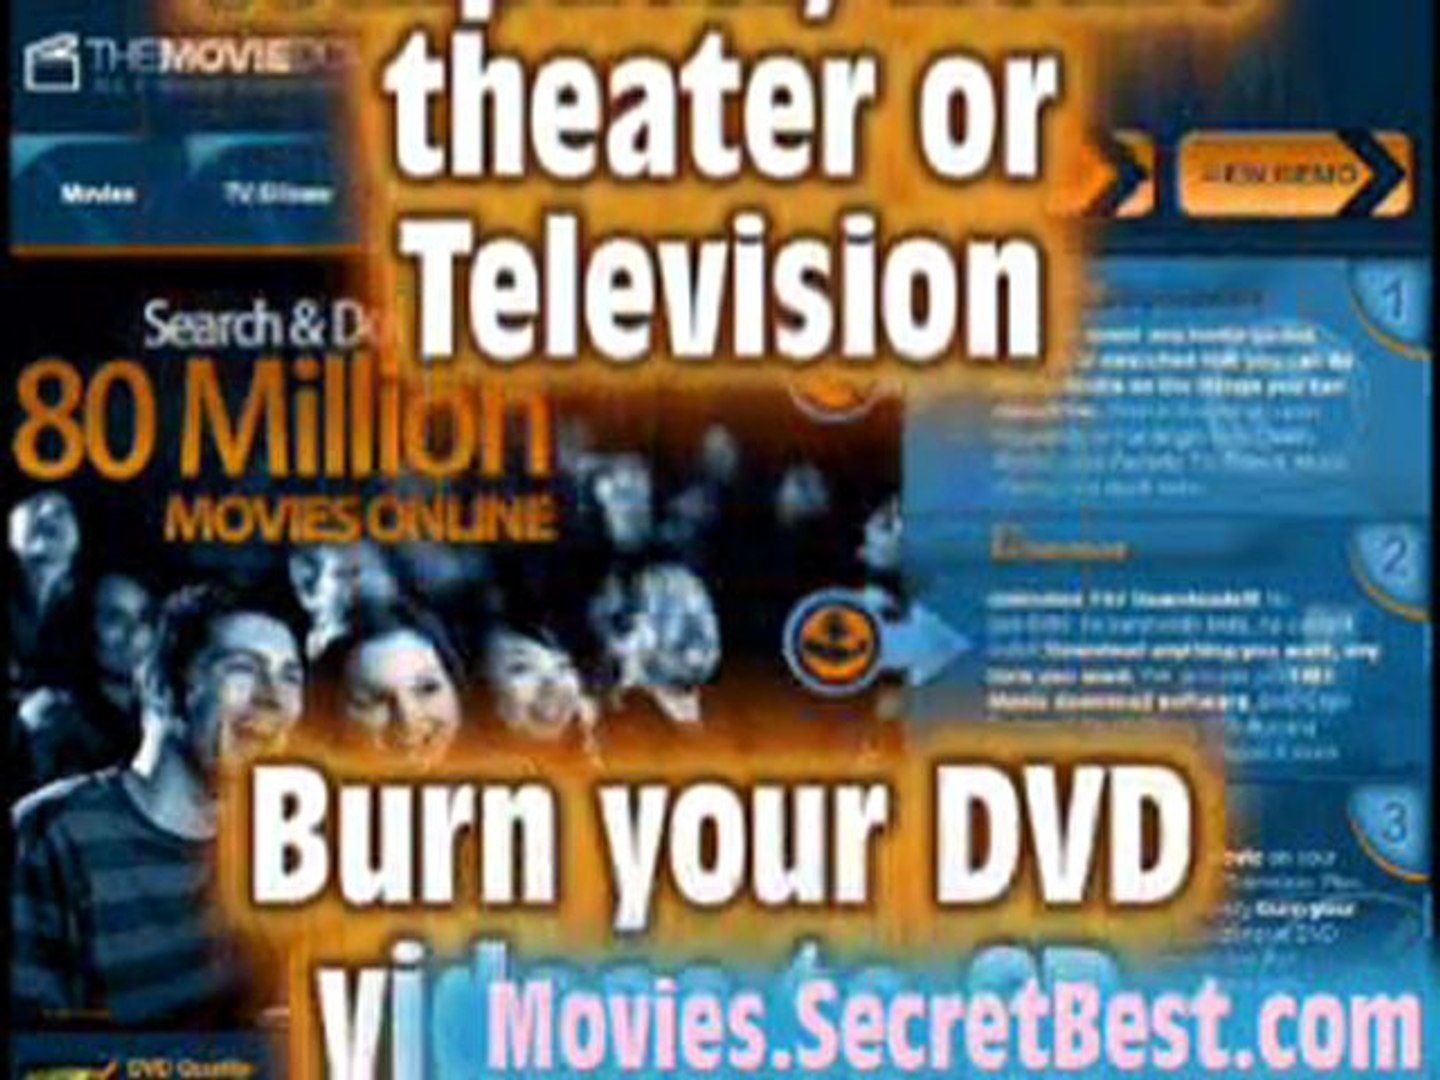 TheMovieDownloads Review - Download the movies downloads,